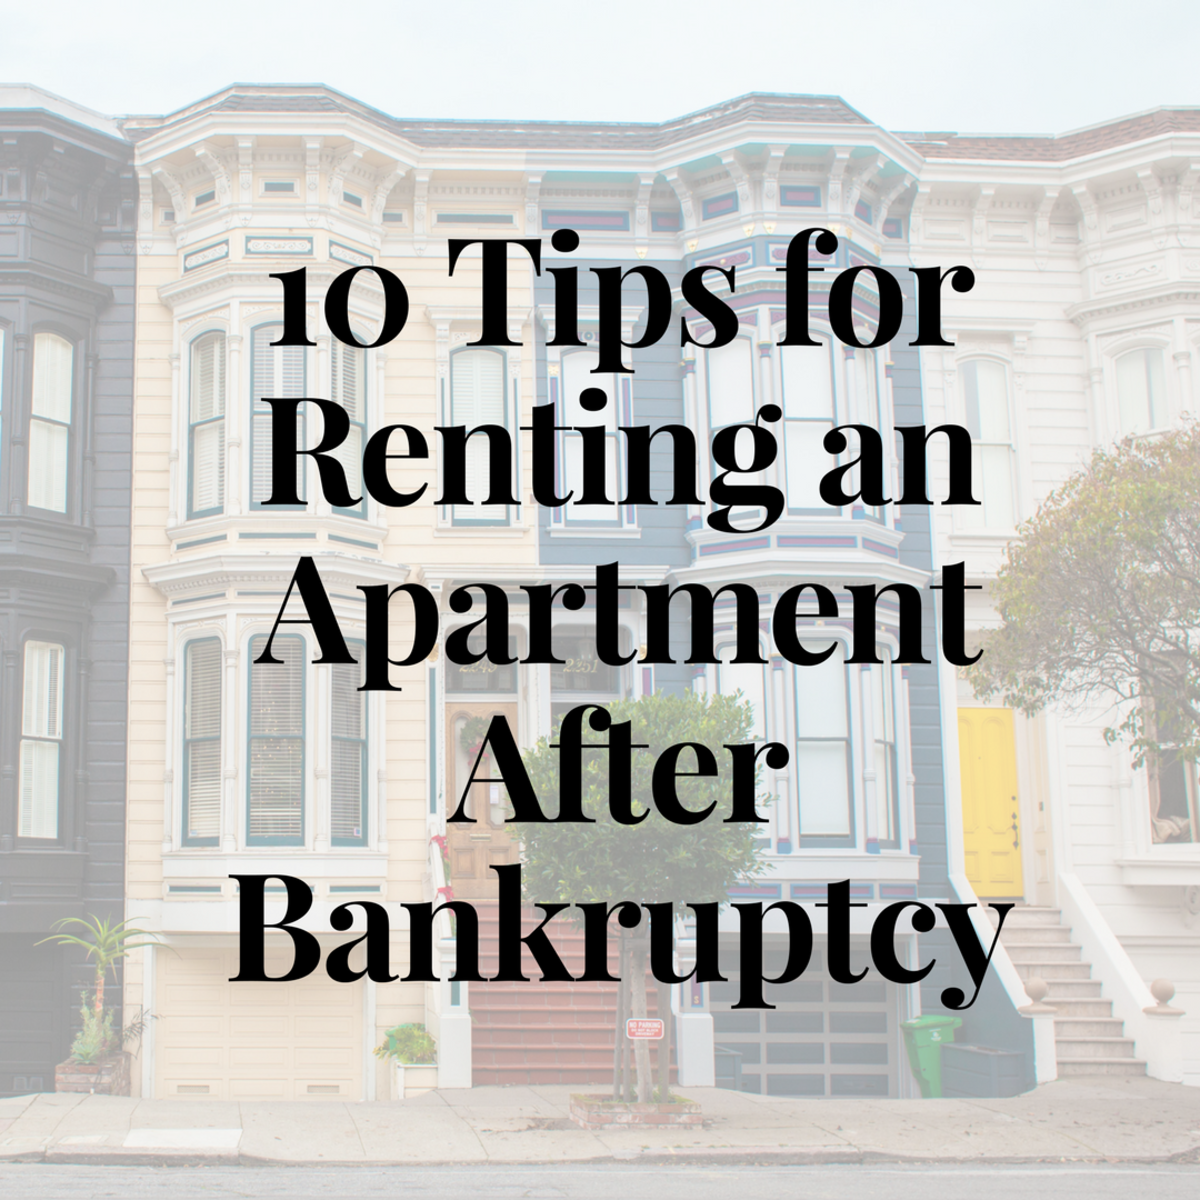 Learn 10 tips for renting an apartment after bankruptcy.